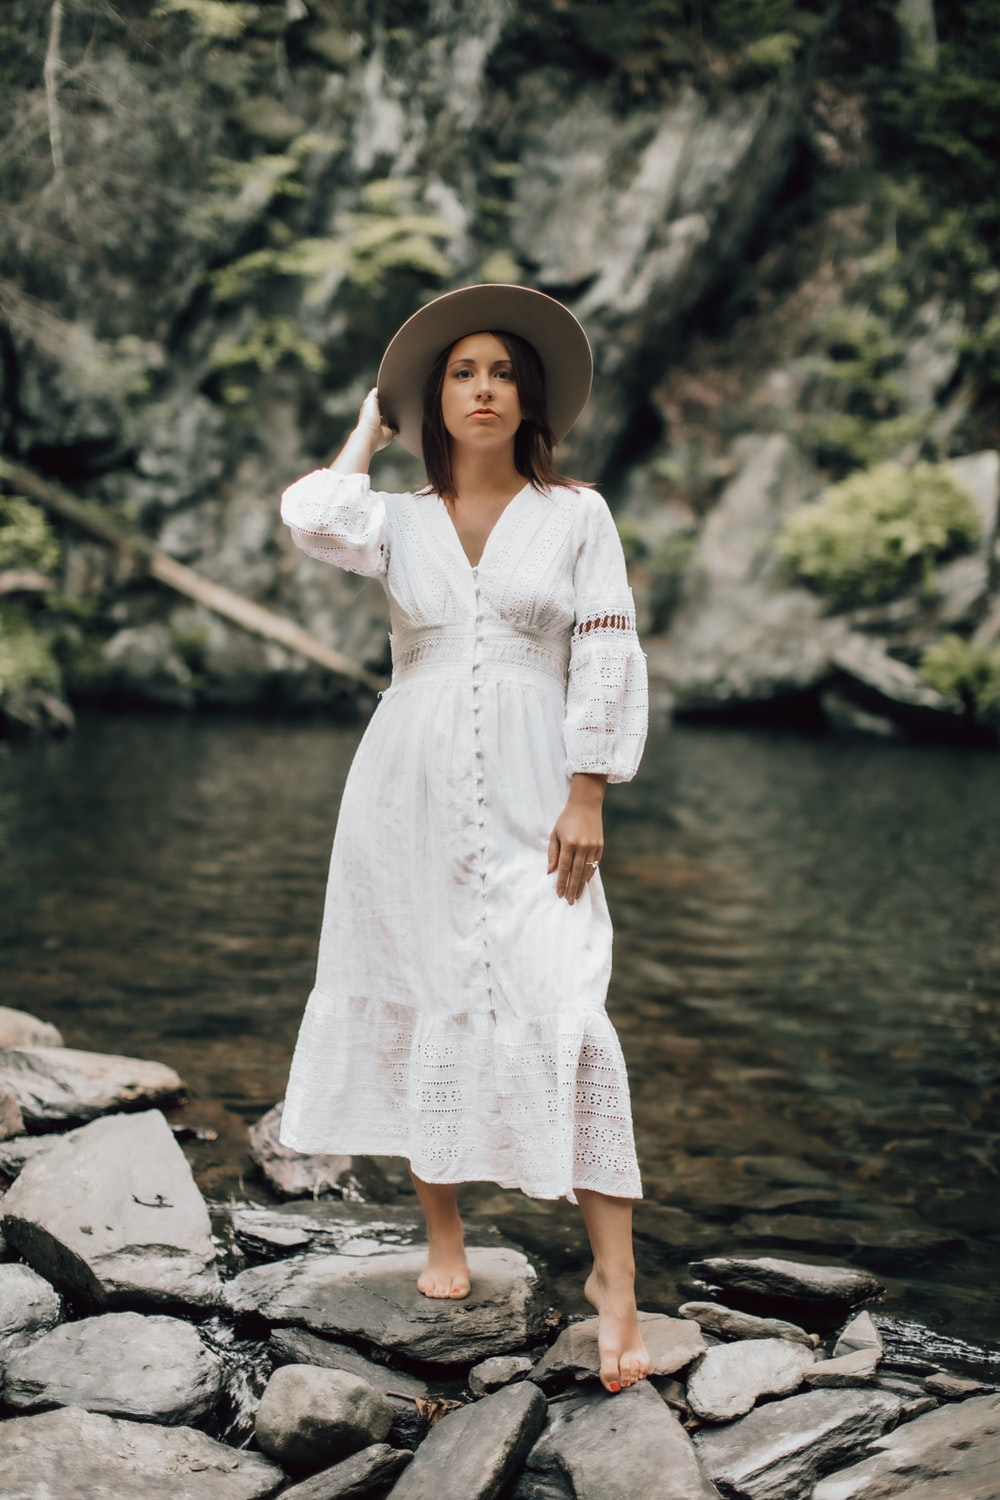 woman in white lace dress standing on rocky shore during daytime